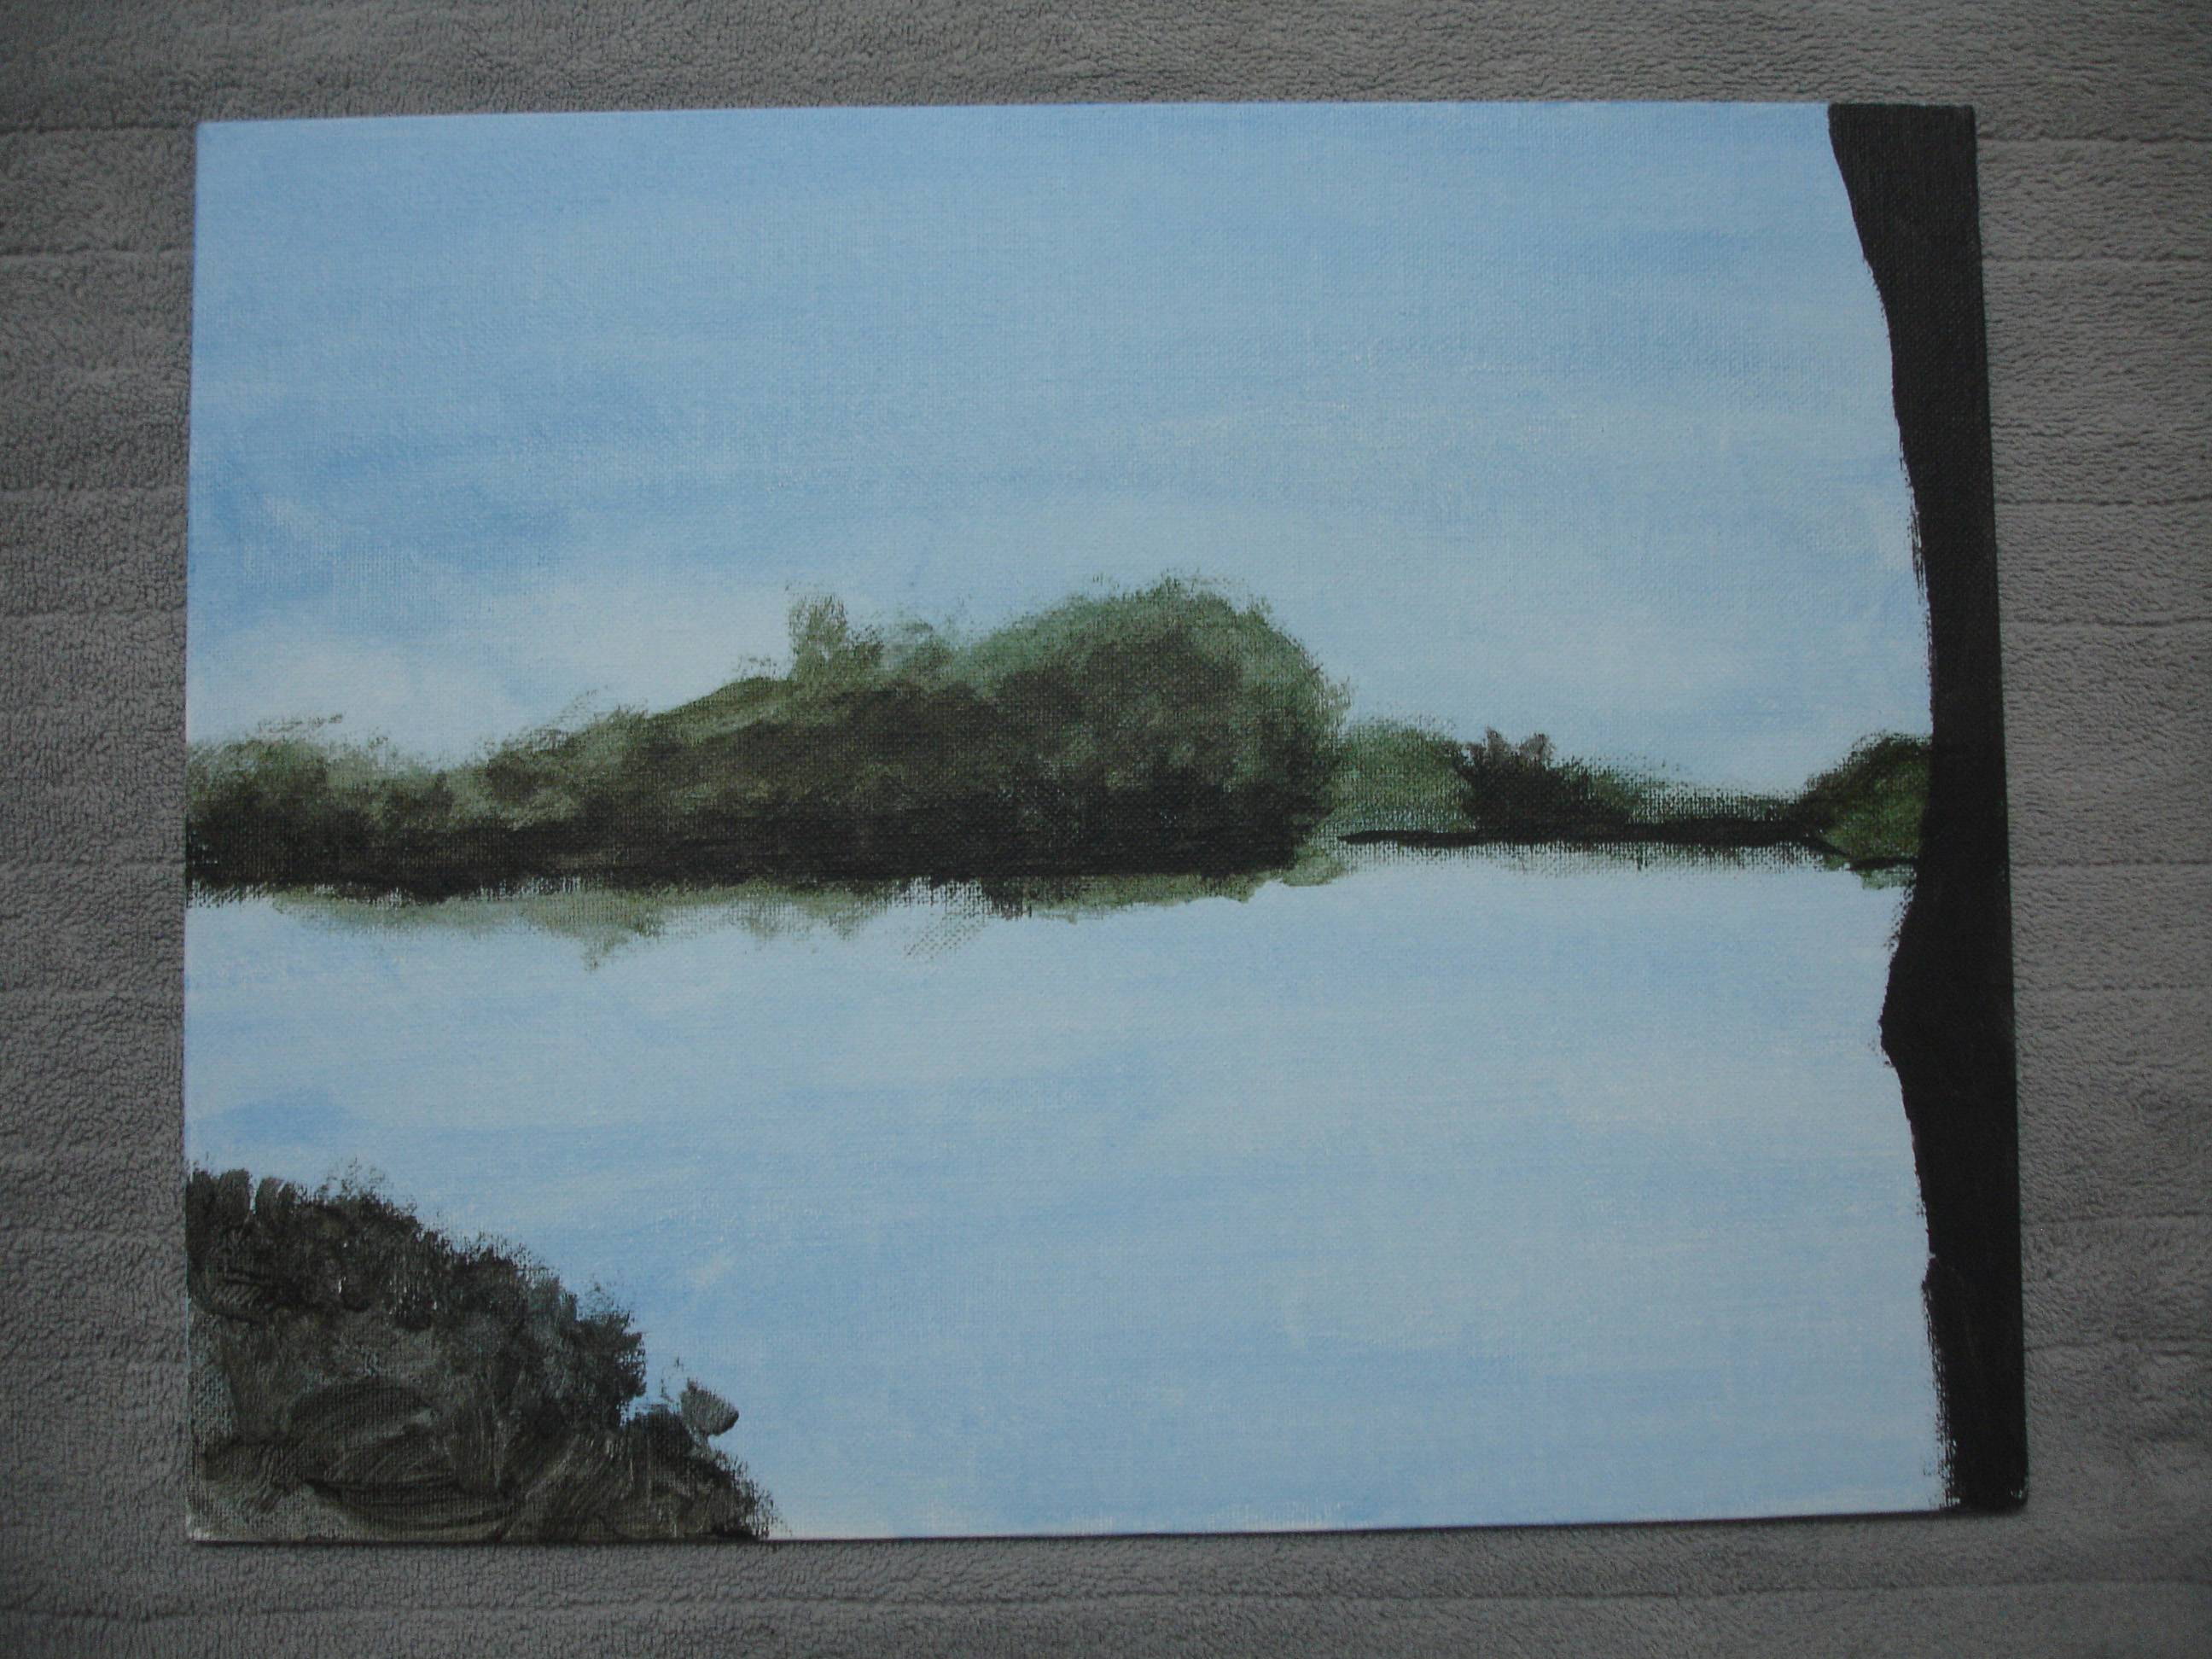 Another Hopedale Pond painting